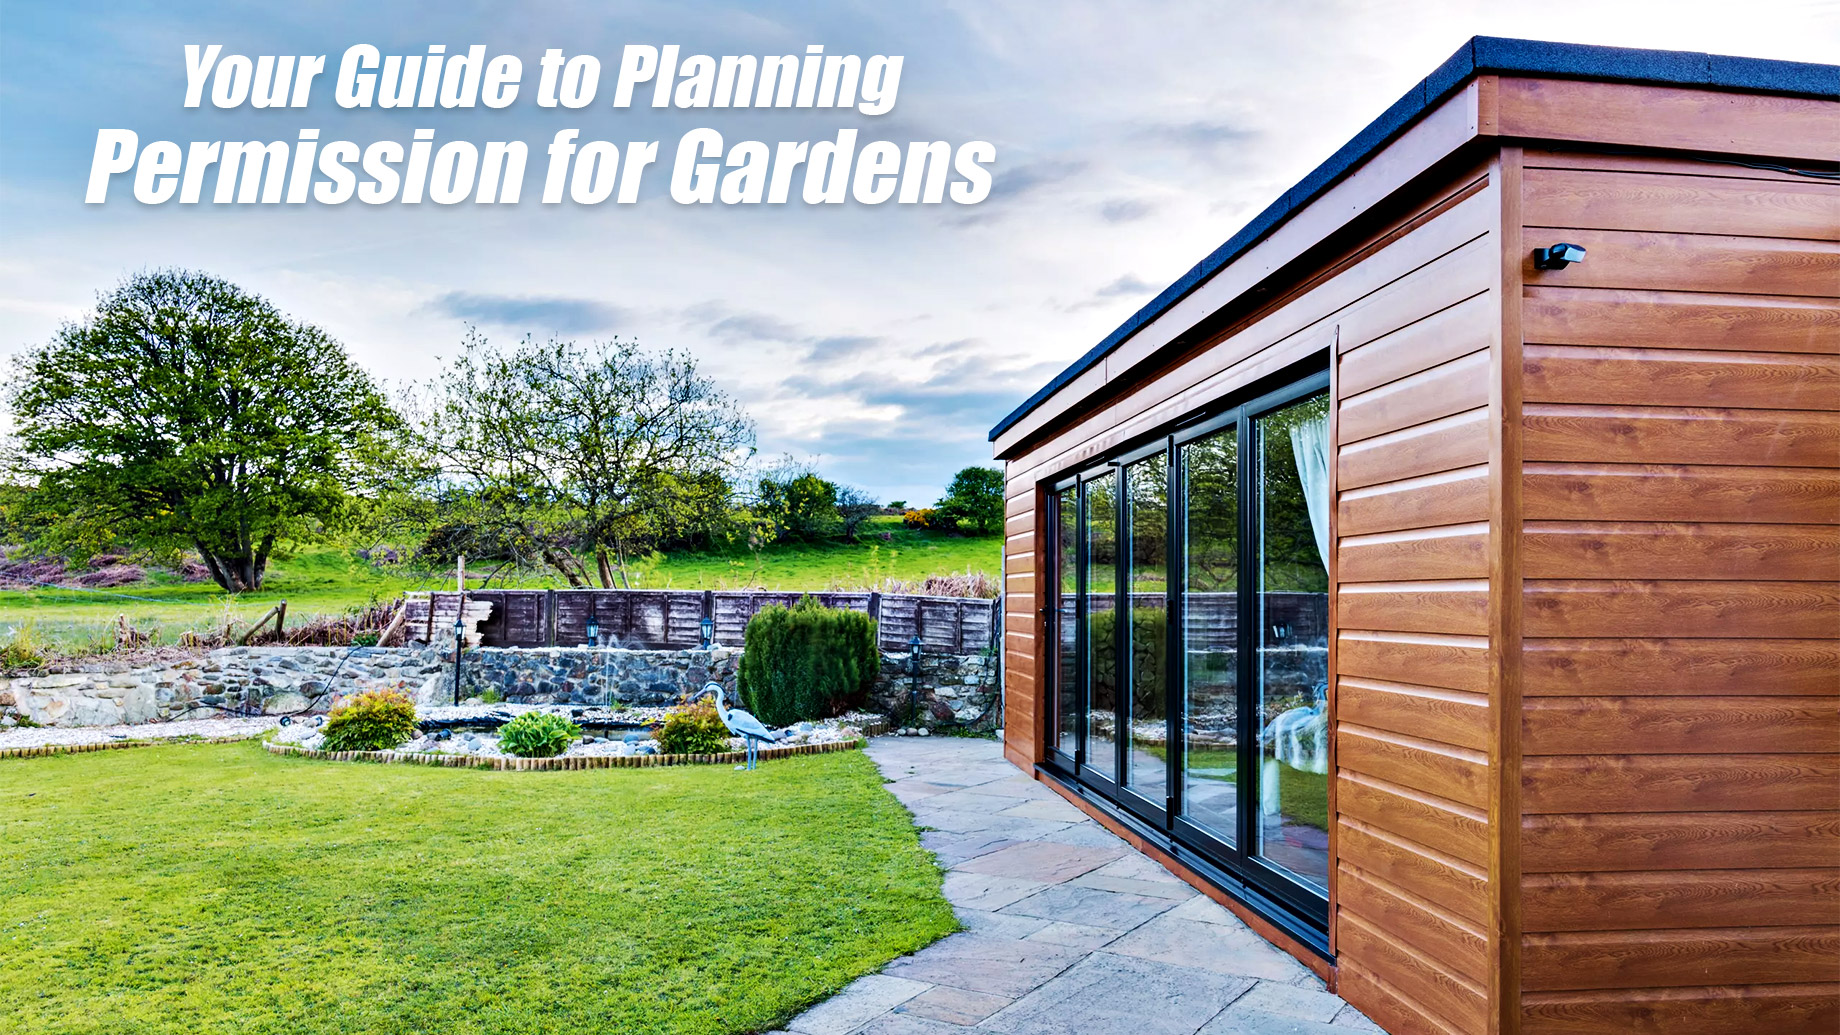 Your Guide to Planning Permission for Gardens